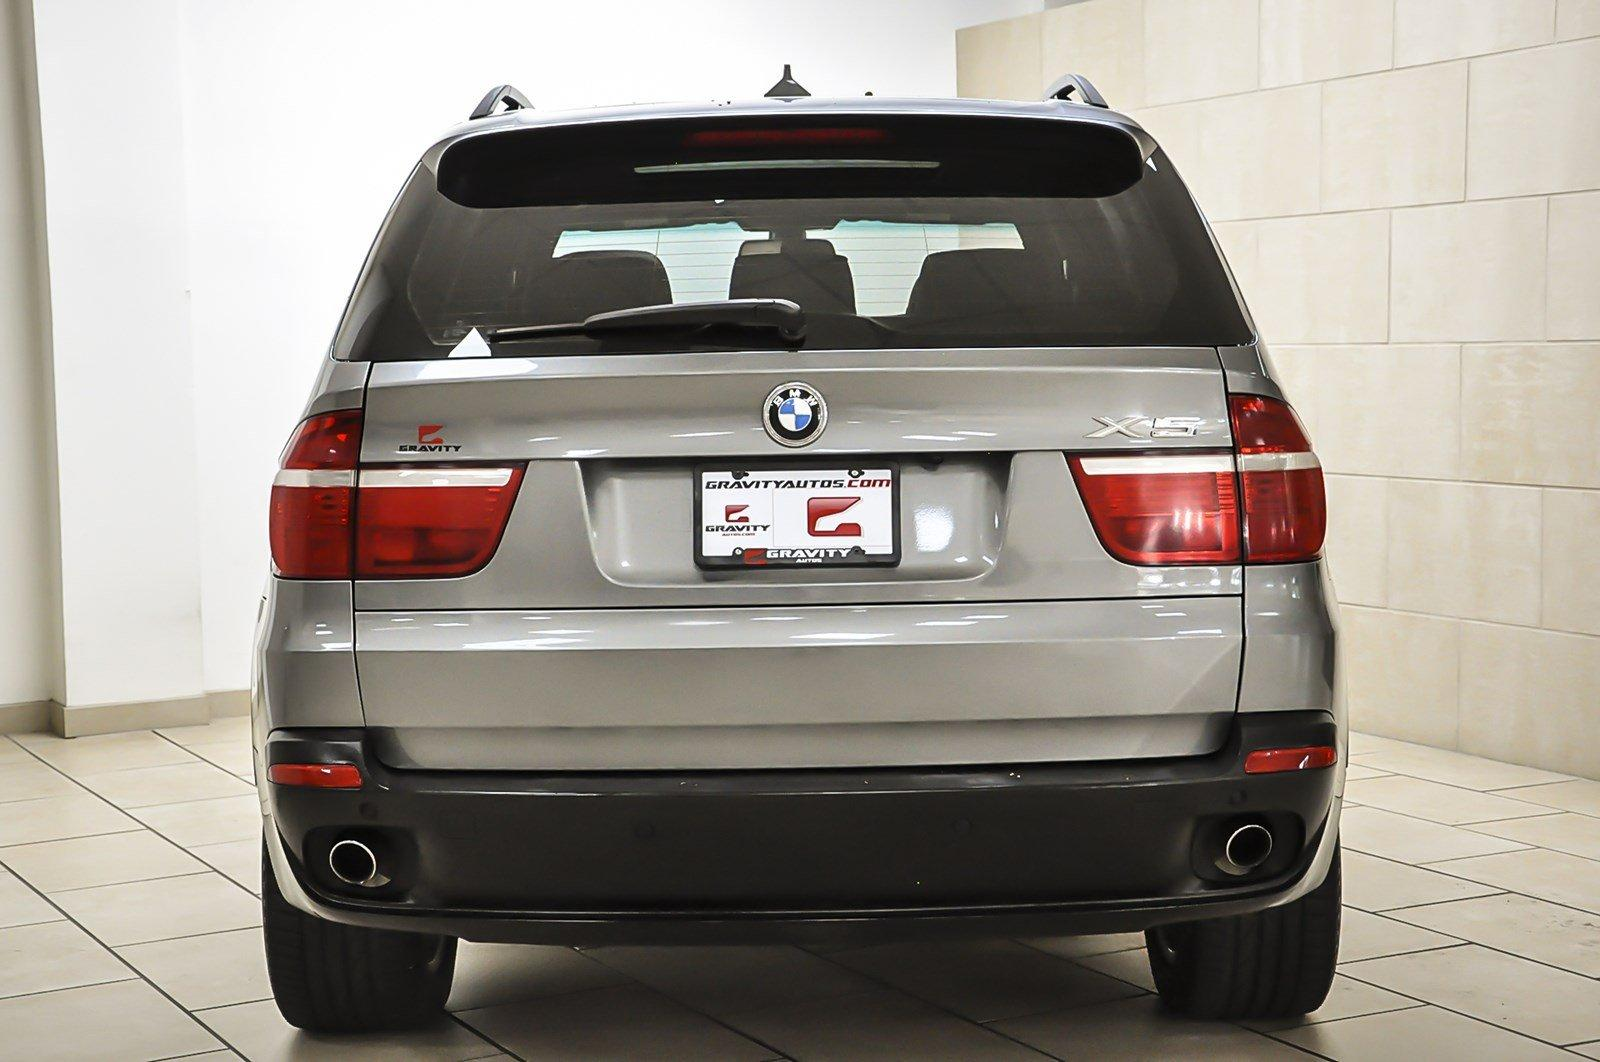 All Types 2008 x5 : 2008 BMW X5 3.0si Stock # 026838 for sale near Sandy Springs, GA ...